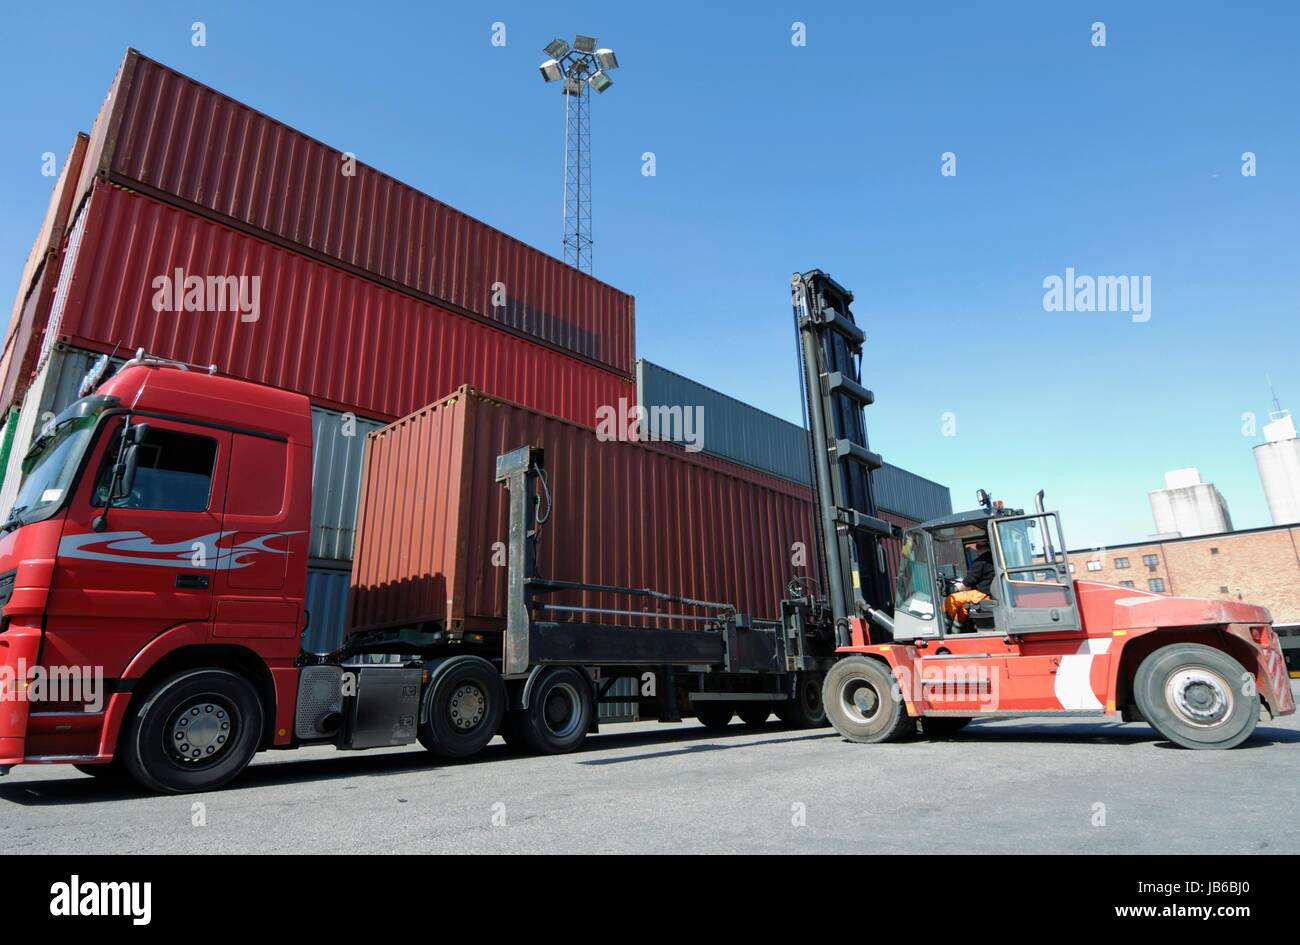 Forklift truck lifting shipping container. Stock Photo